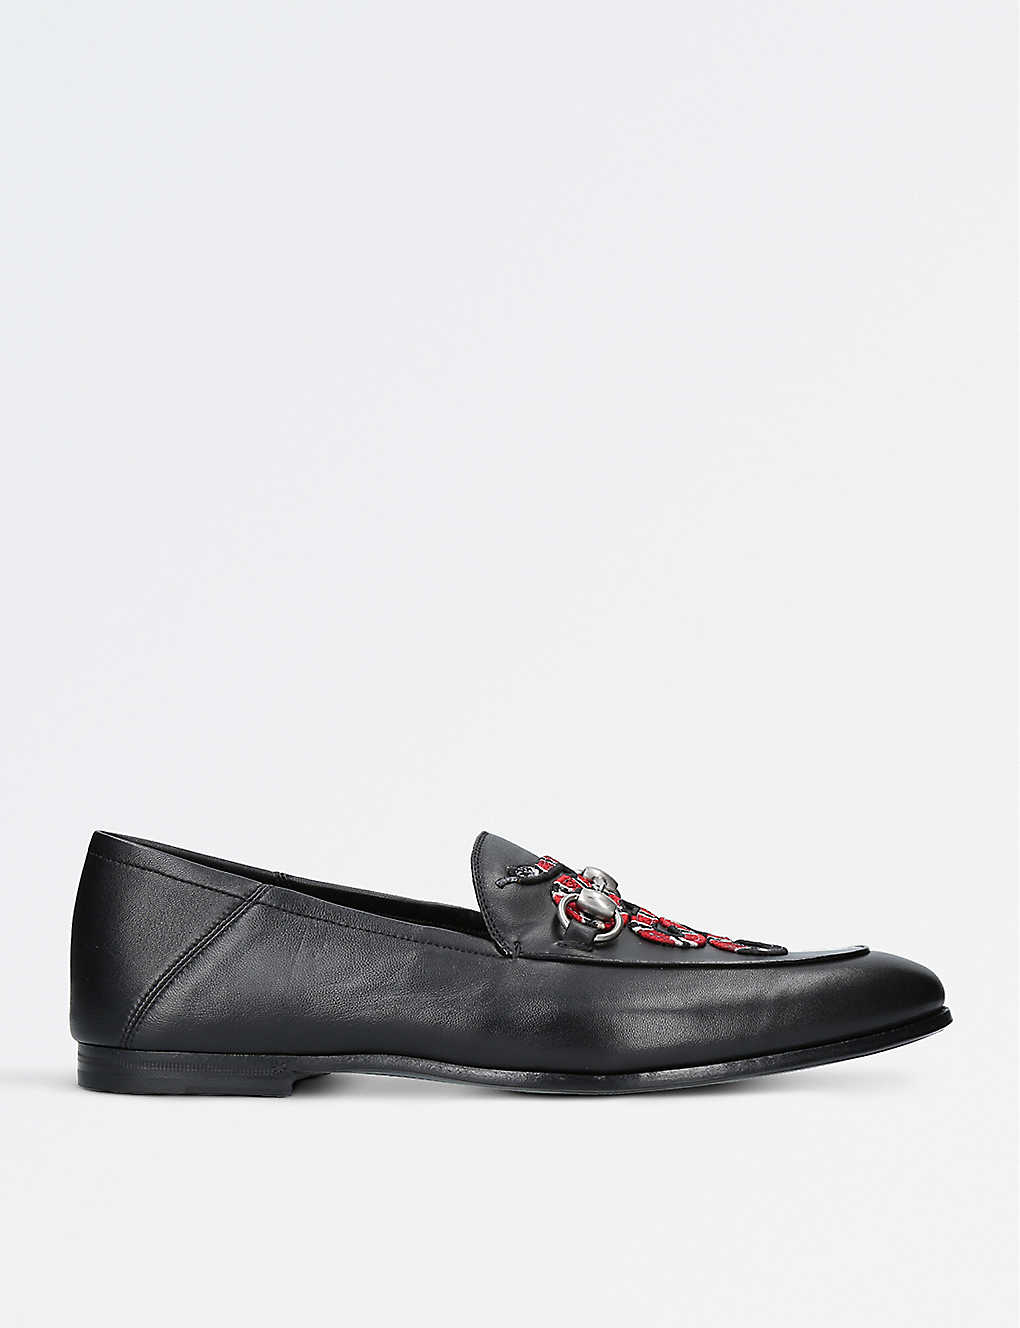 37a946fe0cea6 GUCCI - Kingsnake leather loafers | Selfridges.com